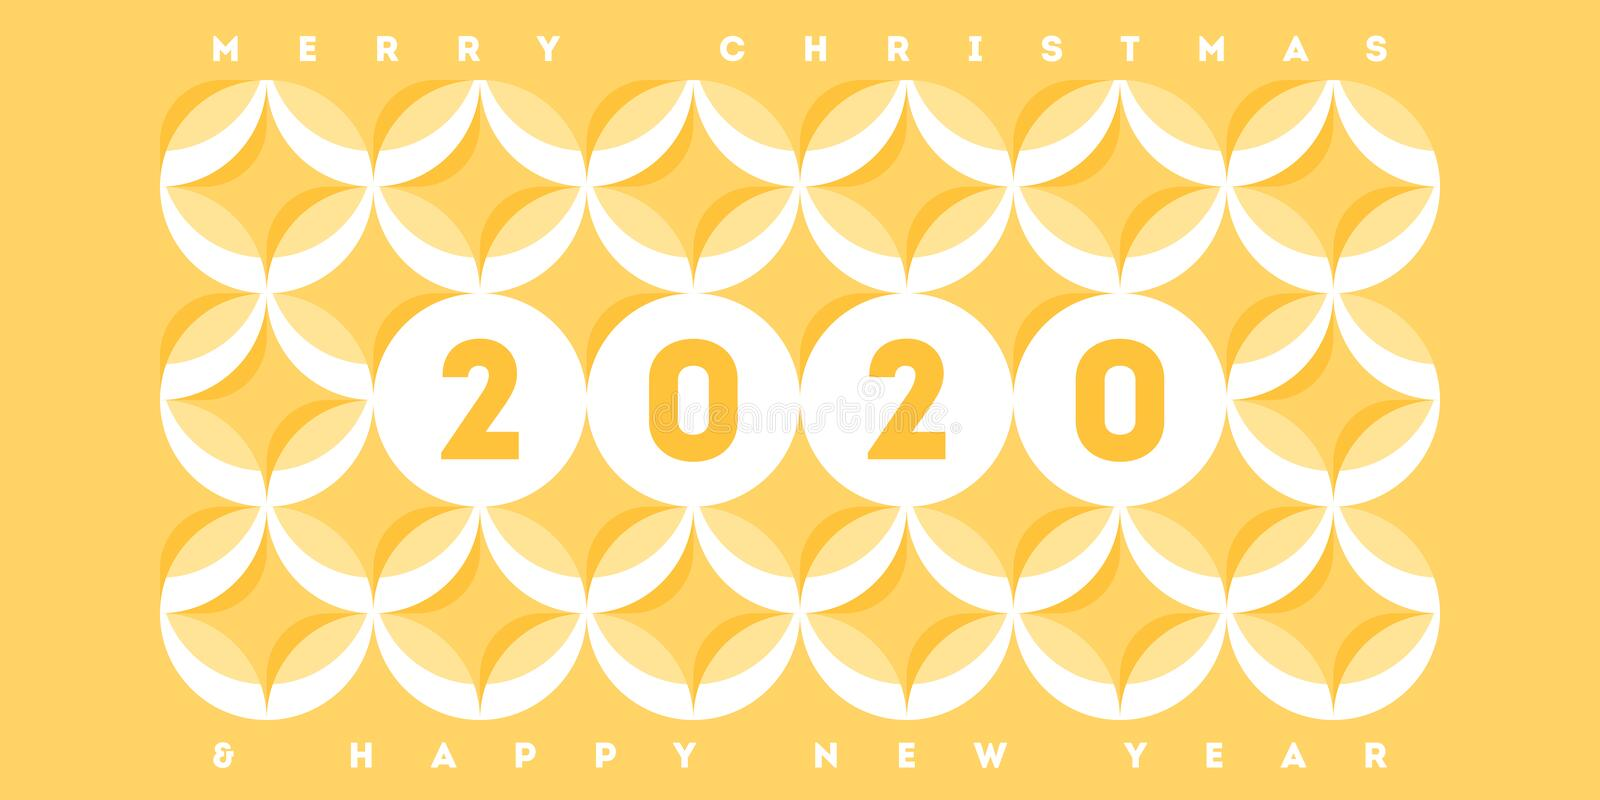 Abstract banner template design with elegant numbers 2020 on pastel colored geometric pattern with circles and stars in a yellow vector illustration